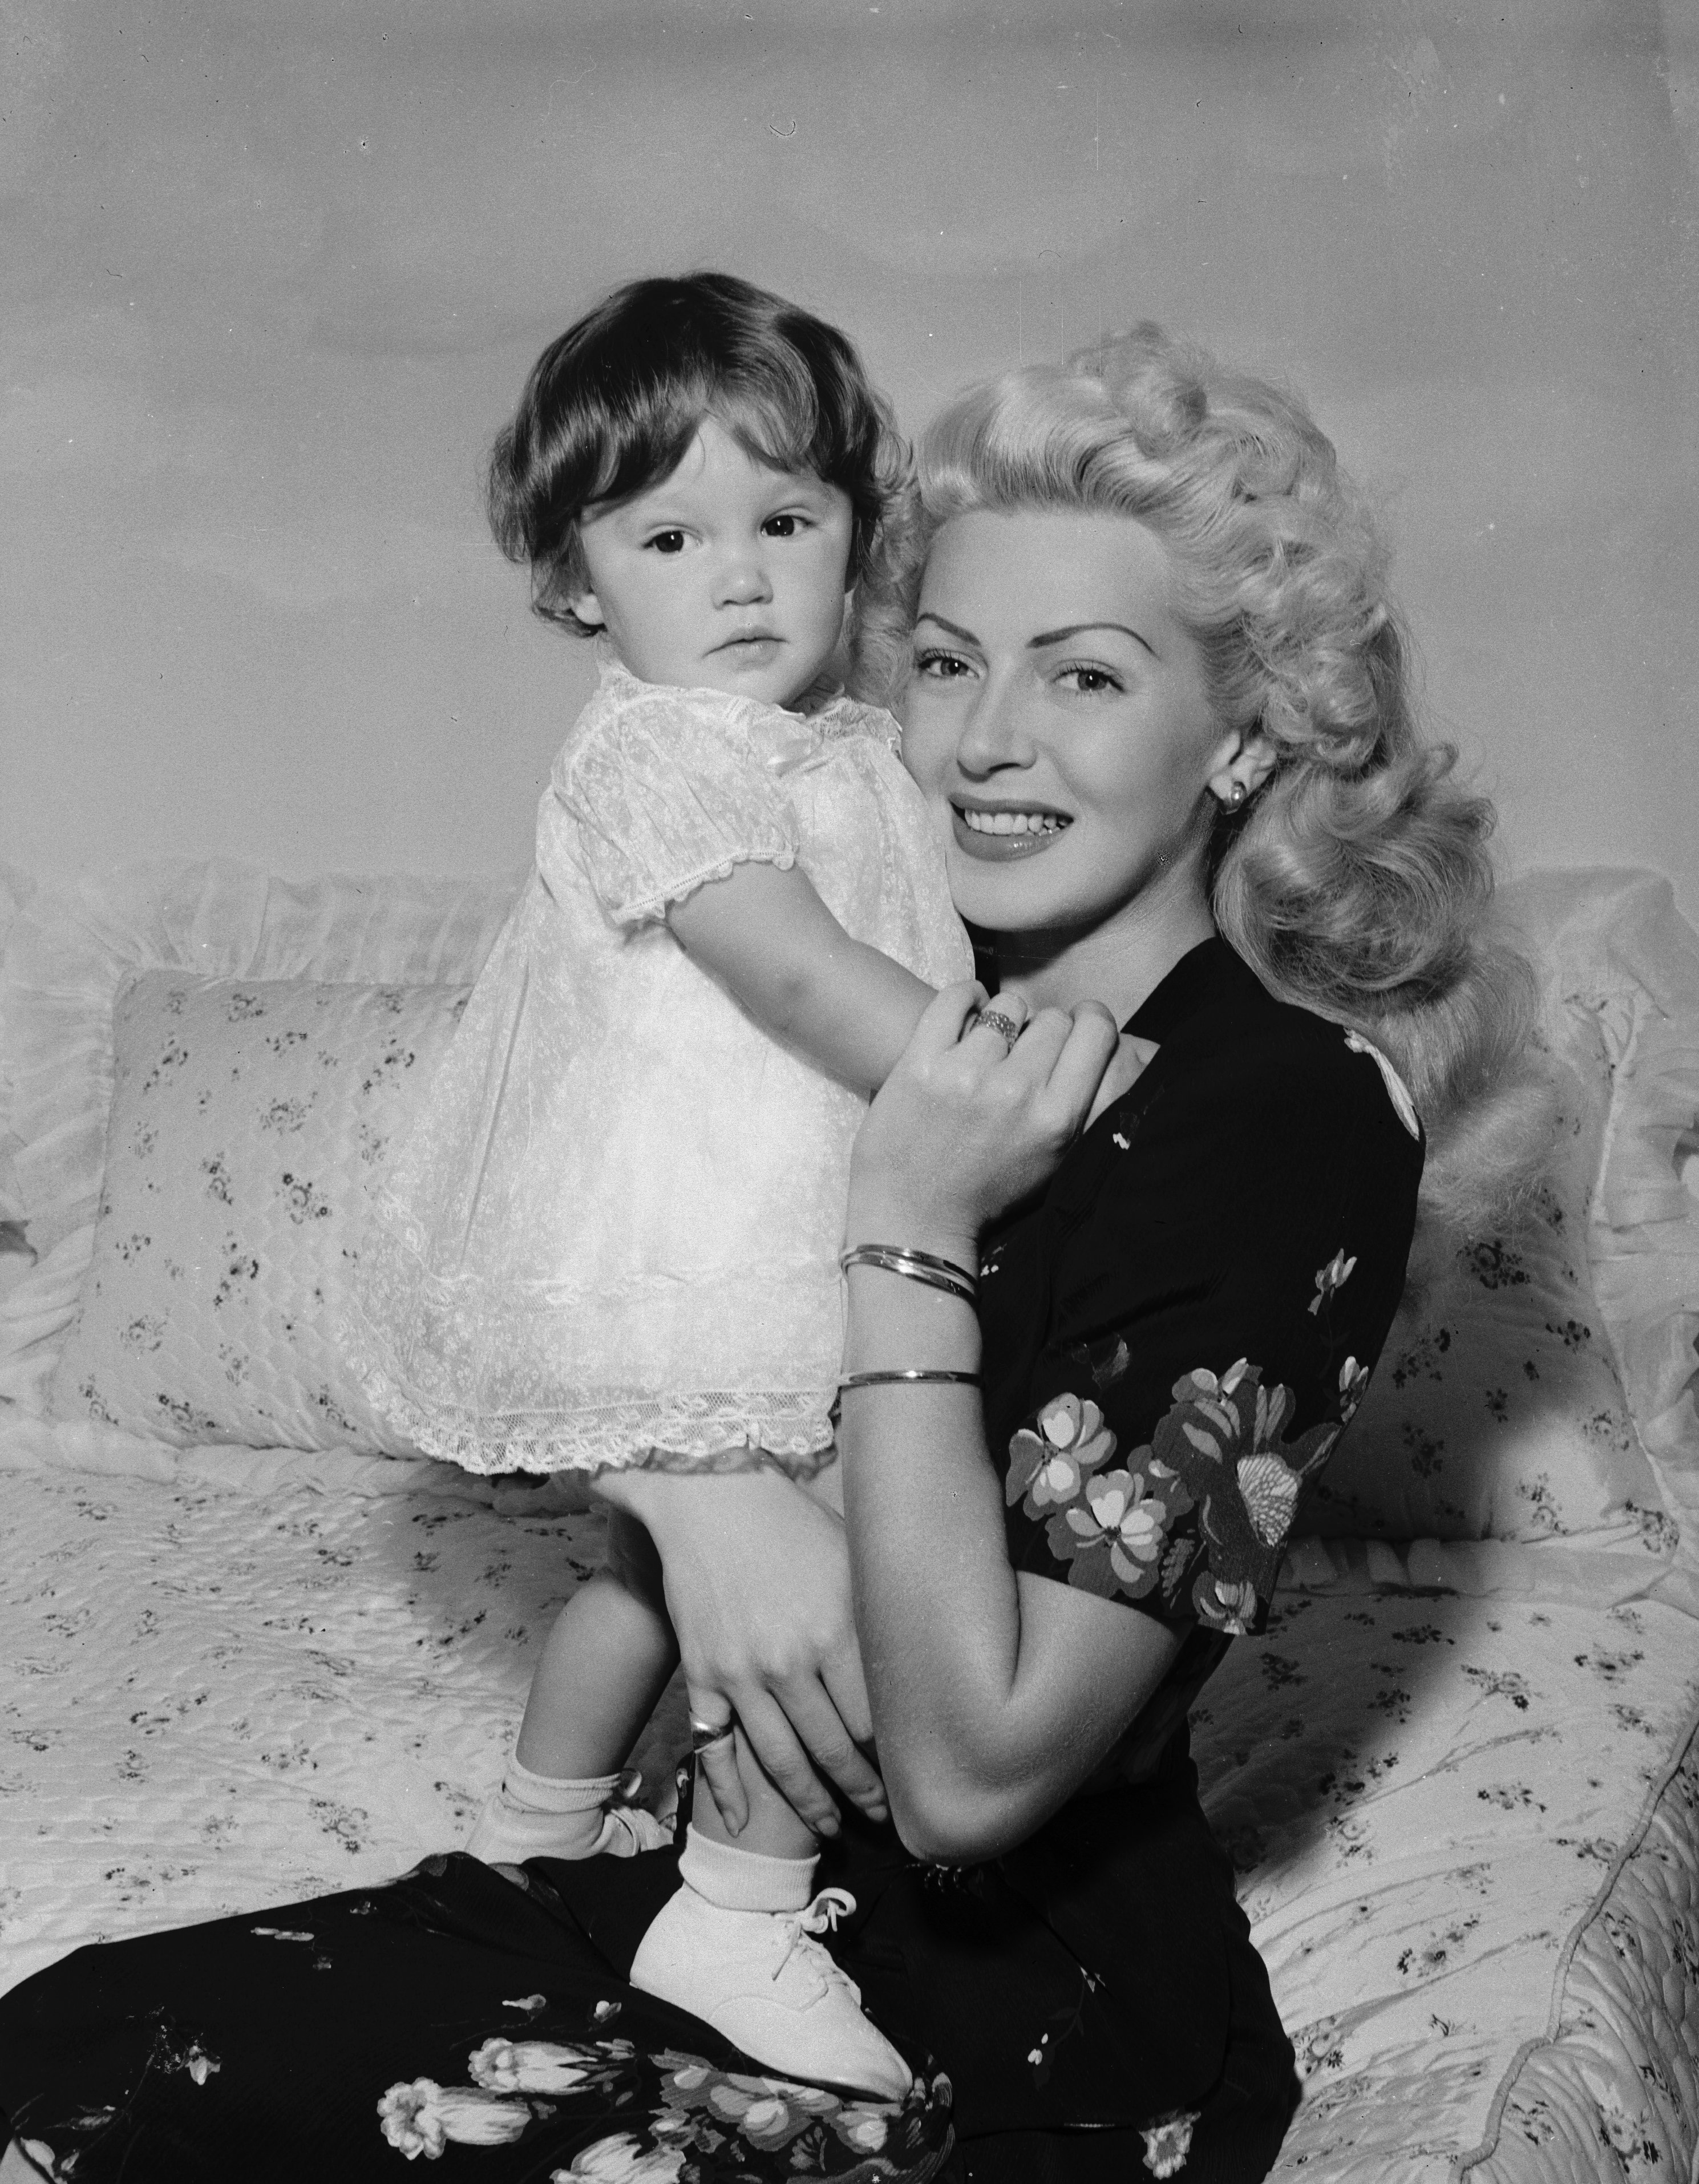 Hollywood actress Lana Turner (1920 - 1995) with her daughter Cheryl Crane. 25th July 1944 | Source: Getty Images